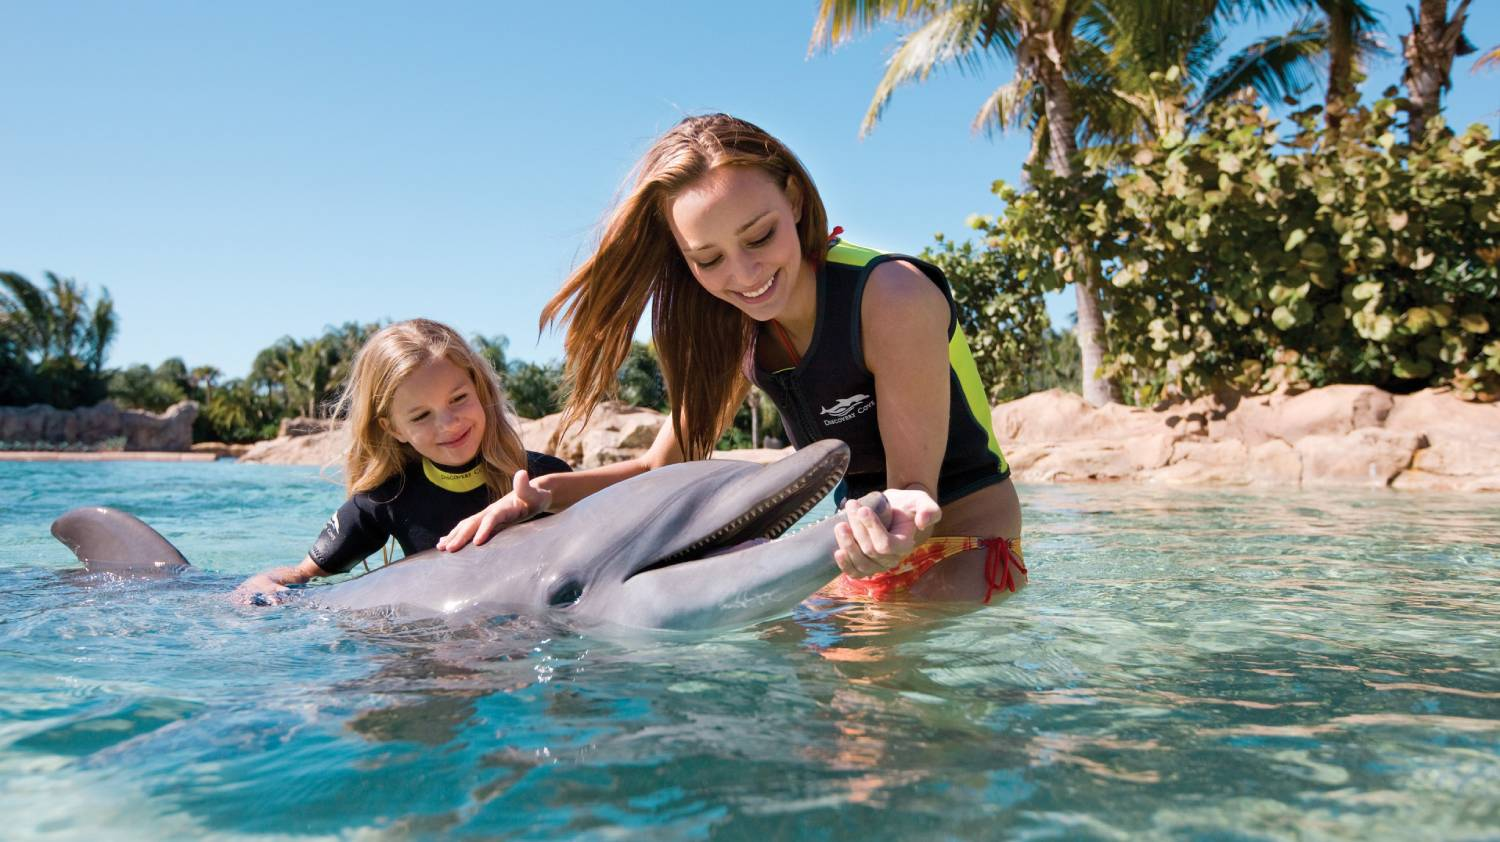 Discovery Cove - Things To Do In Orlando